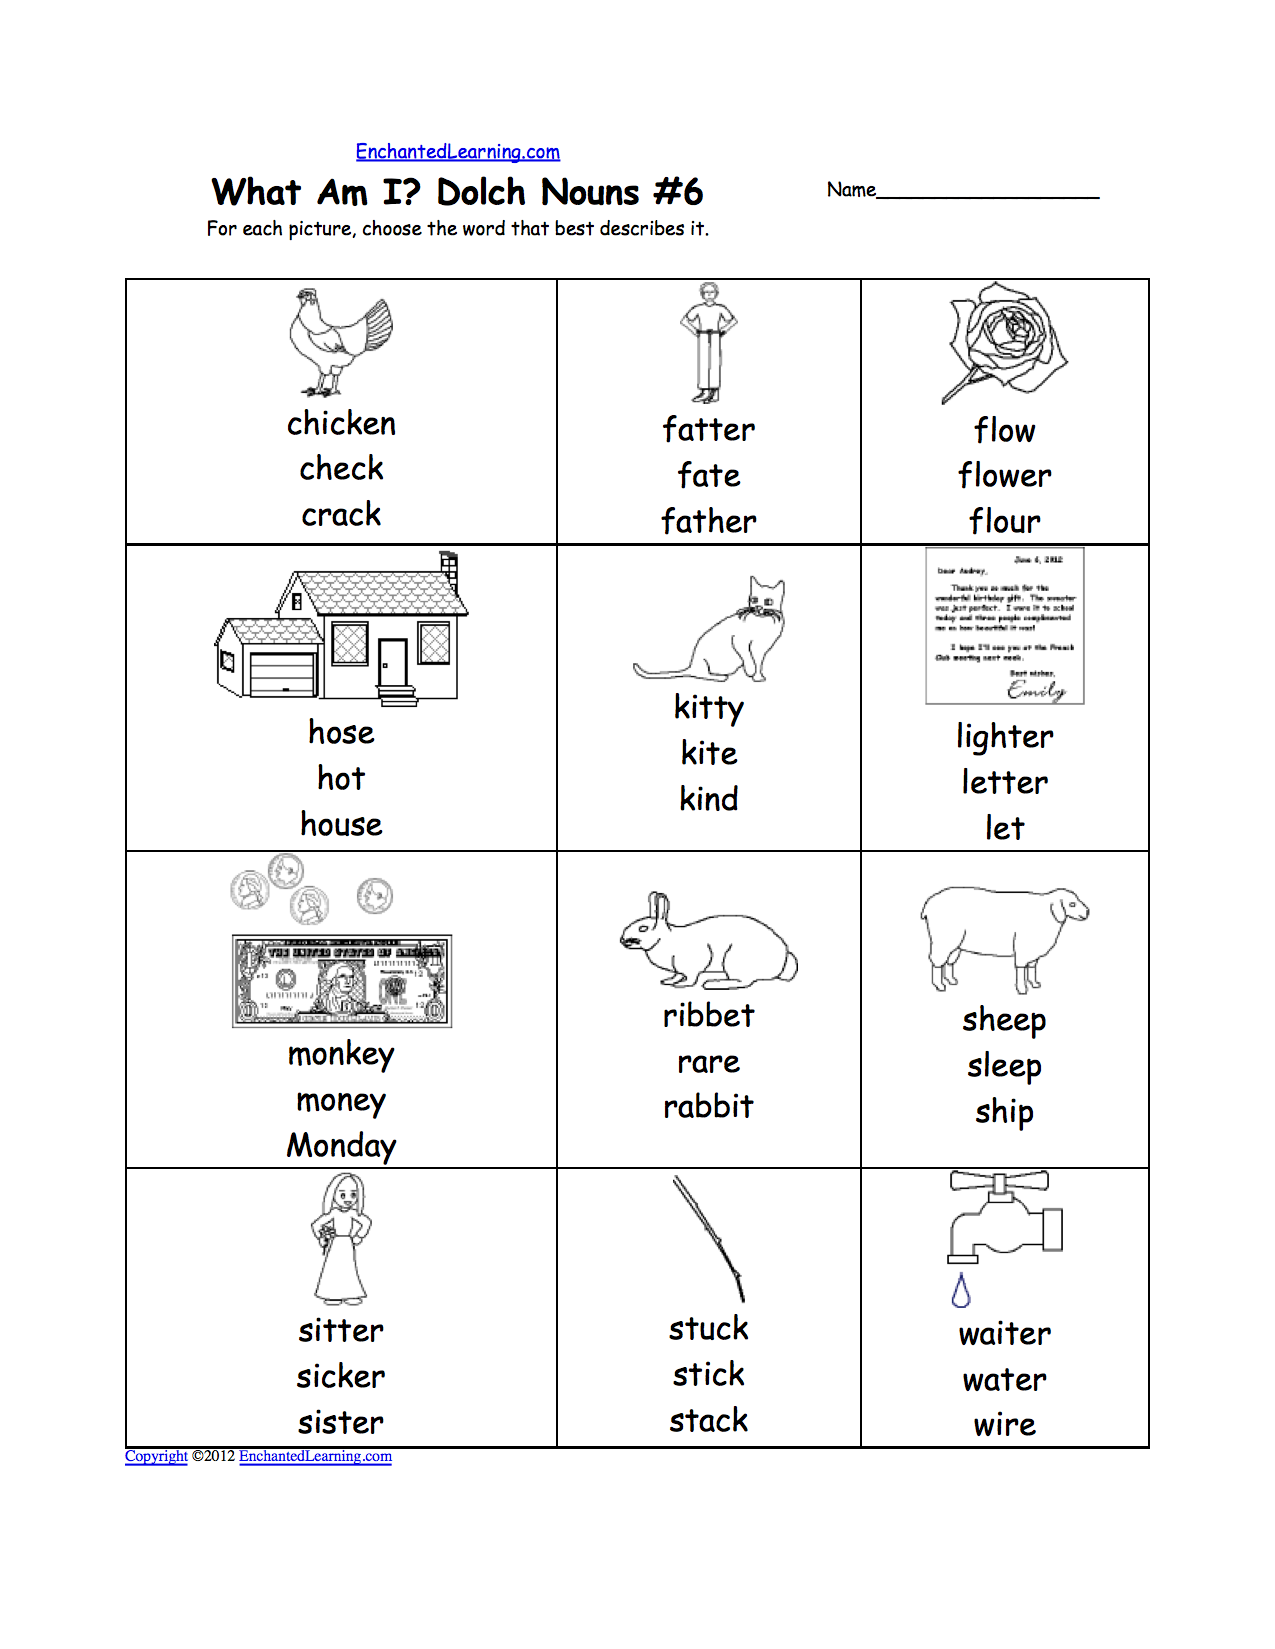 Worksheets Noun Worksheet dolch nouns multiple choice spelling words at enchantedlearning worksheet with a picture and answers